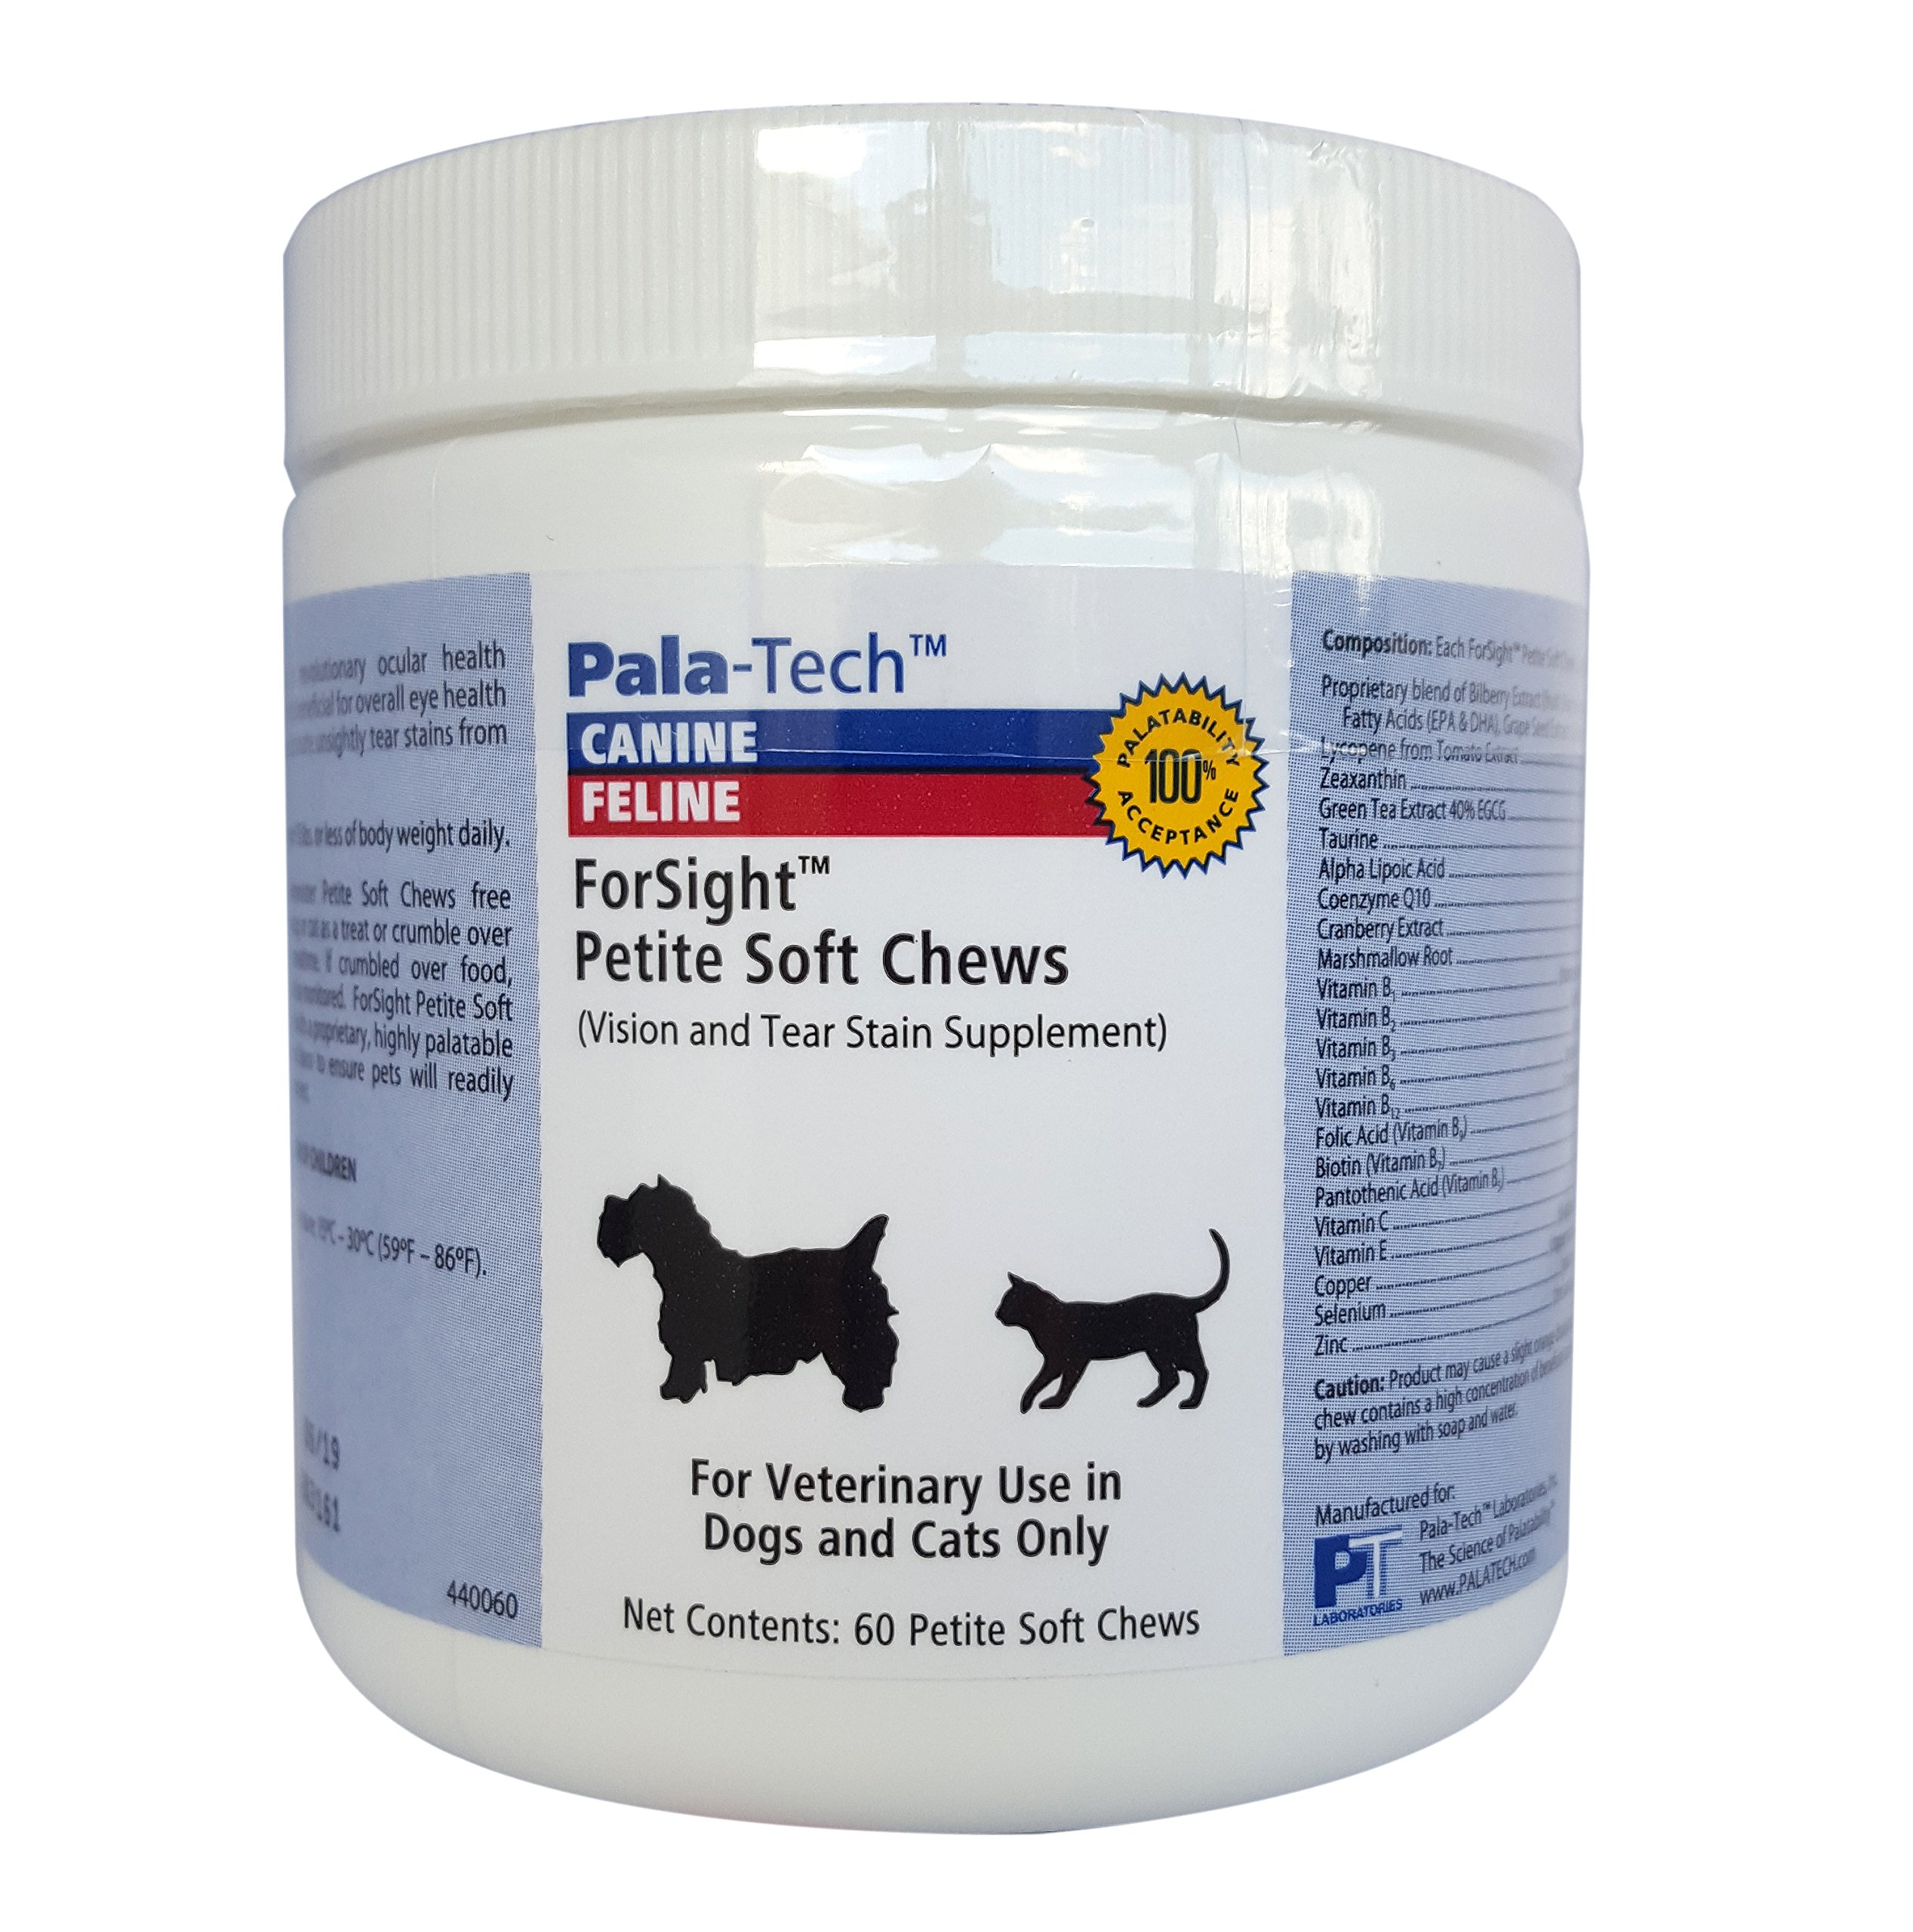 Canine/Feline Forsight Petite Soft Chews